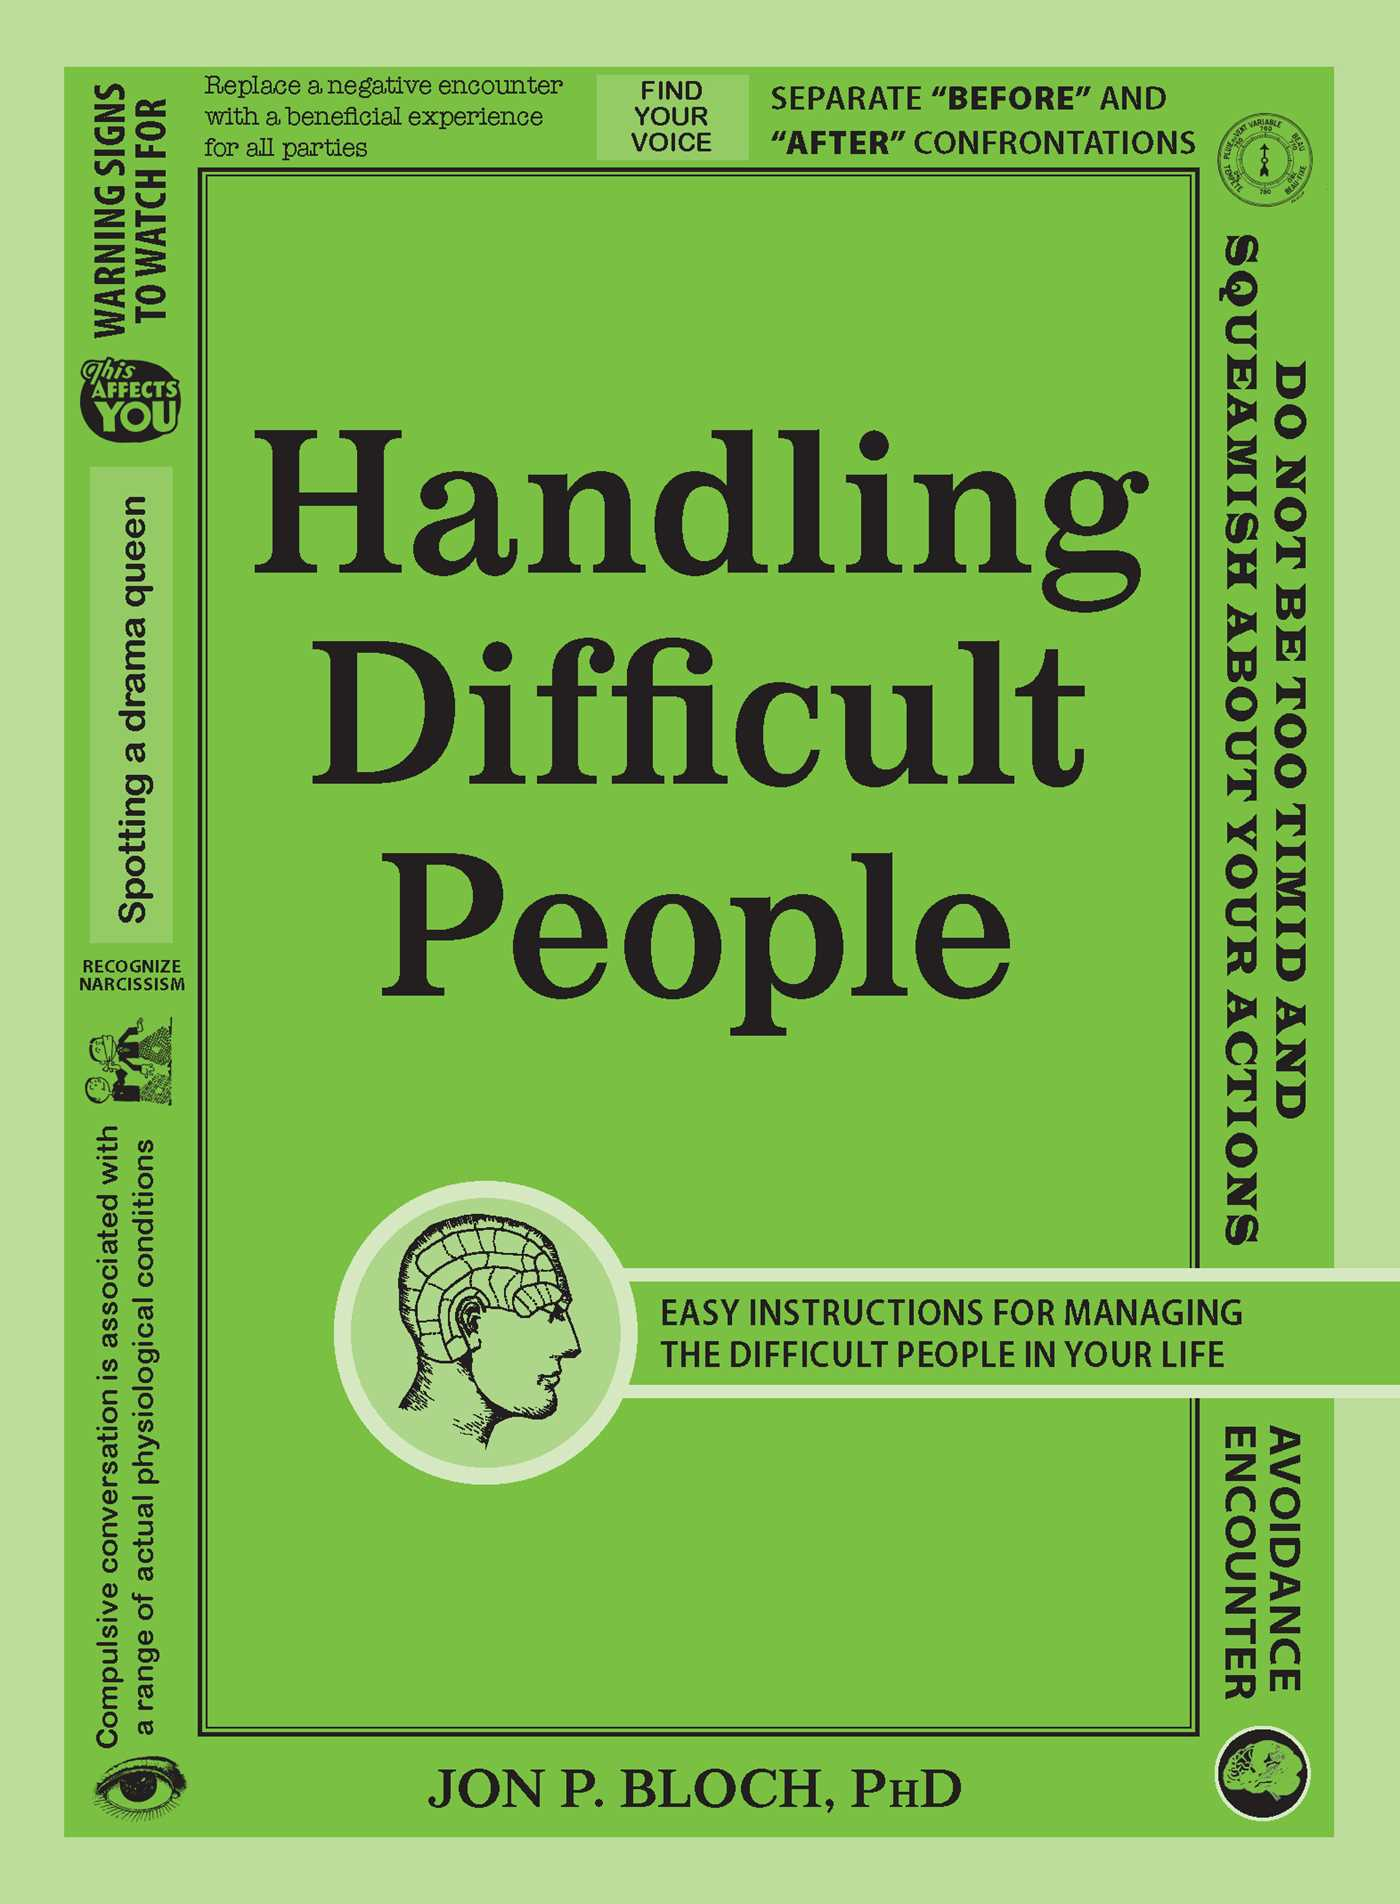 Easy Instructions for Managing the Difficult People in Your Life